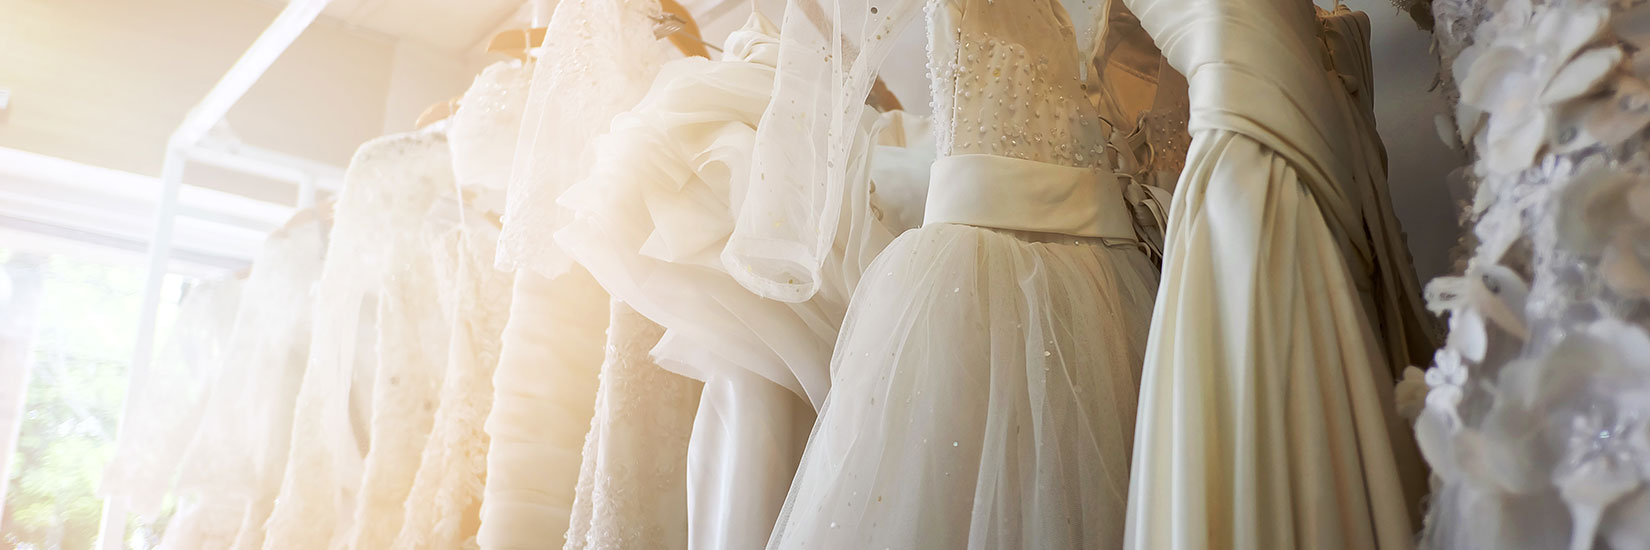 Tips For Wedding Dress Cleaning And Preservation 2019